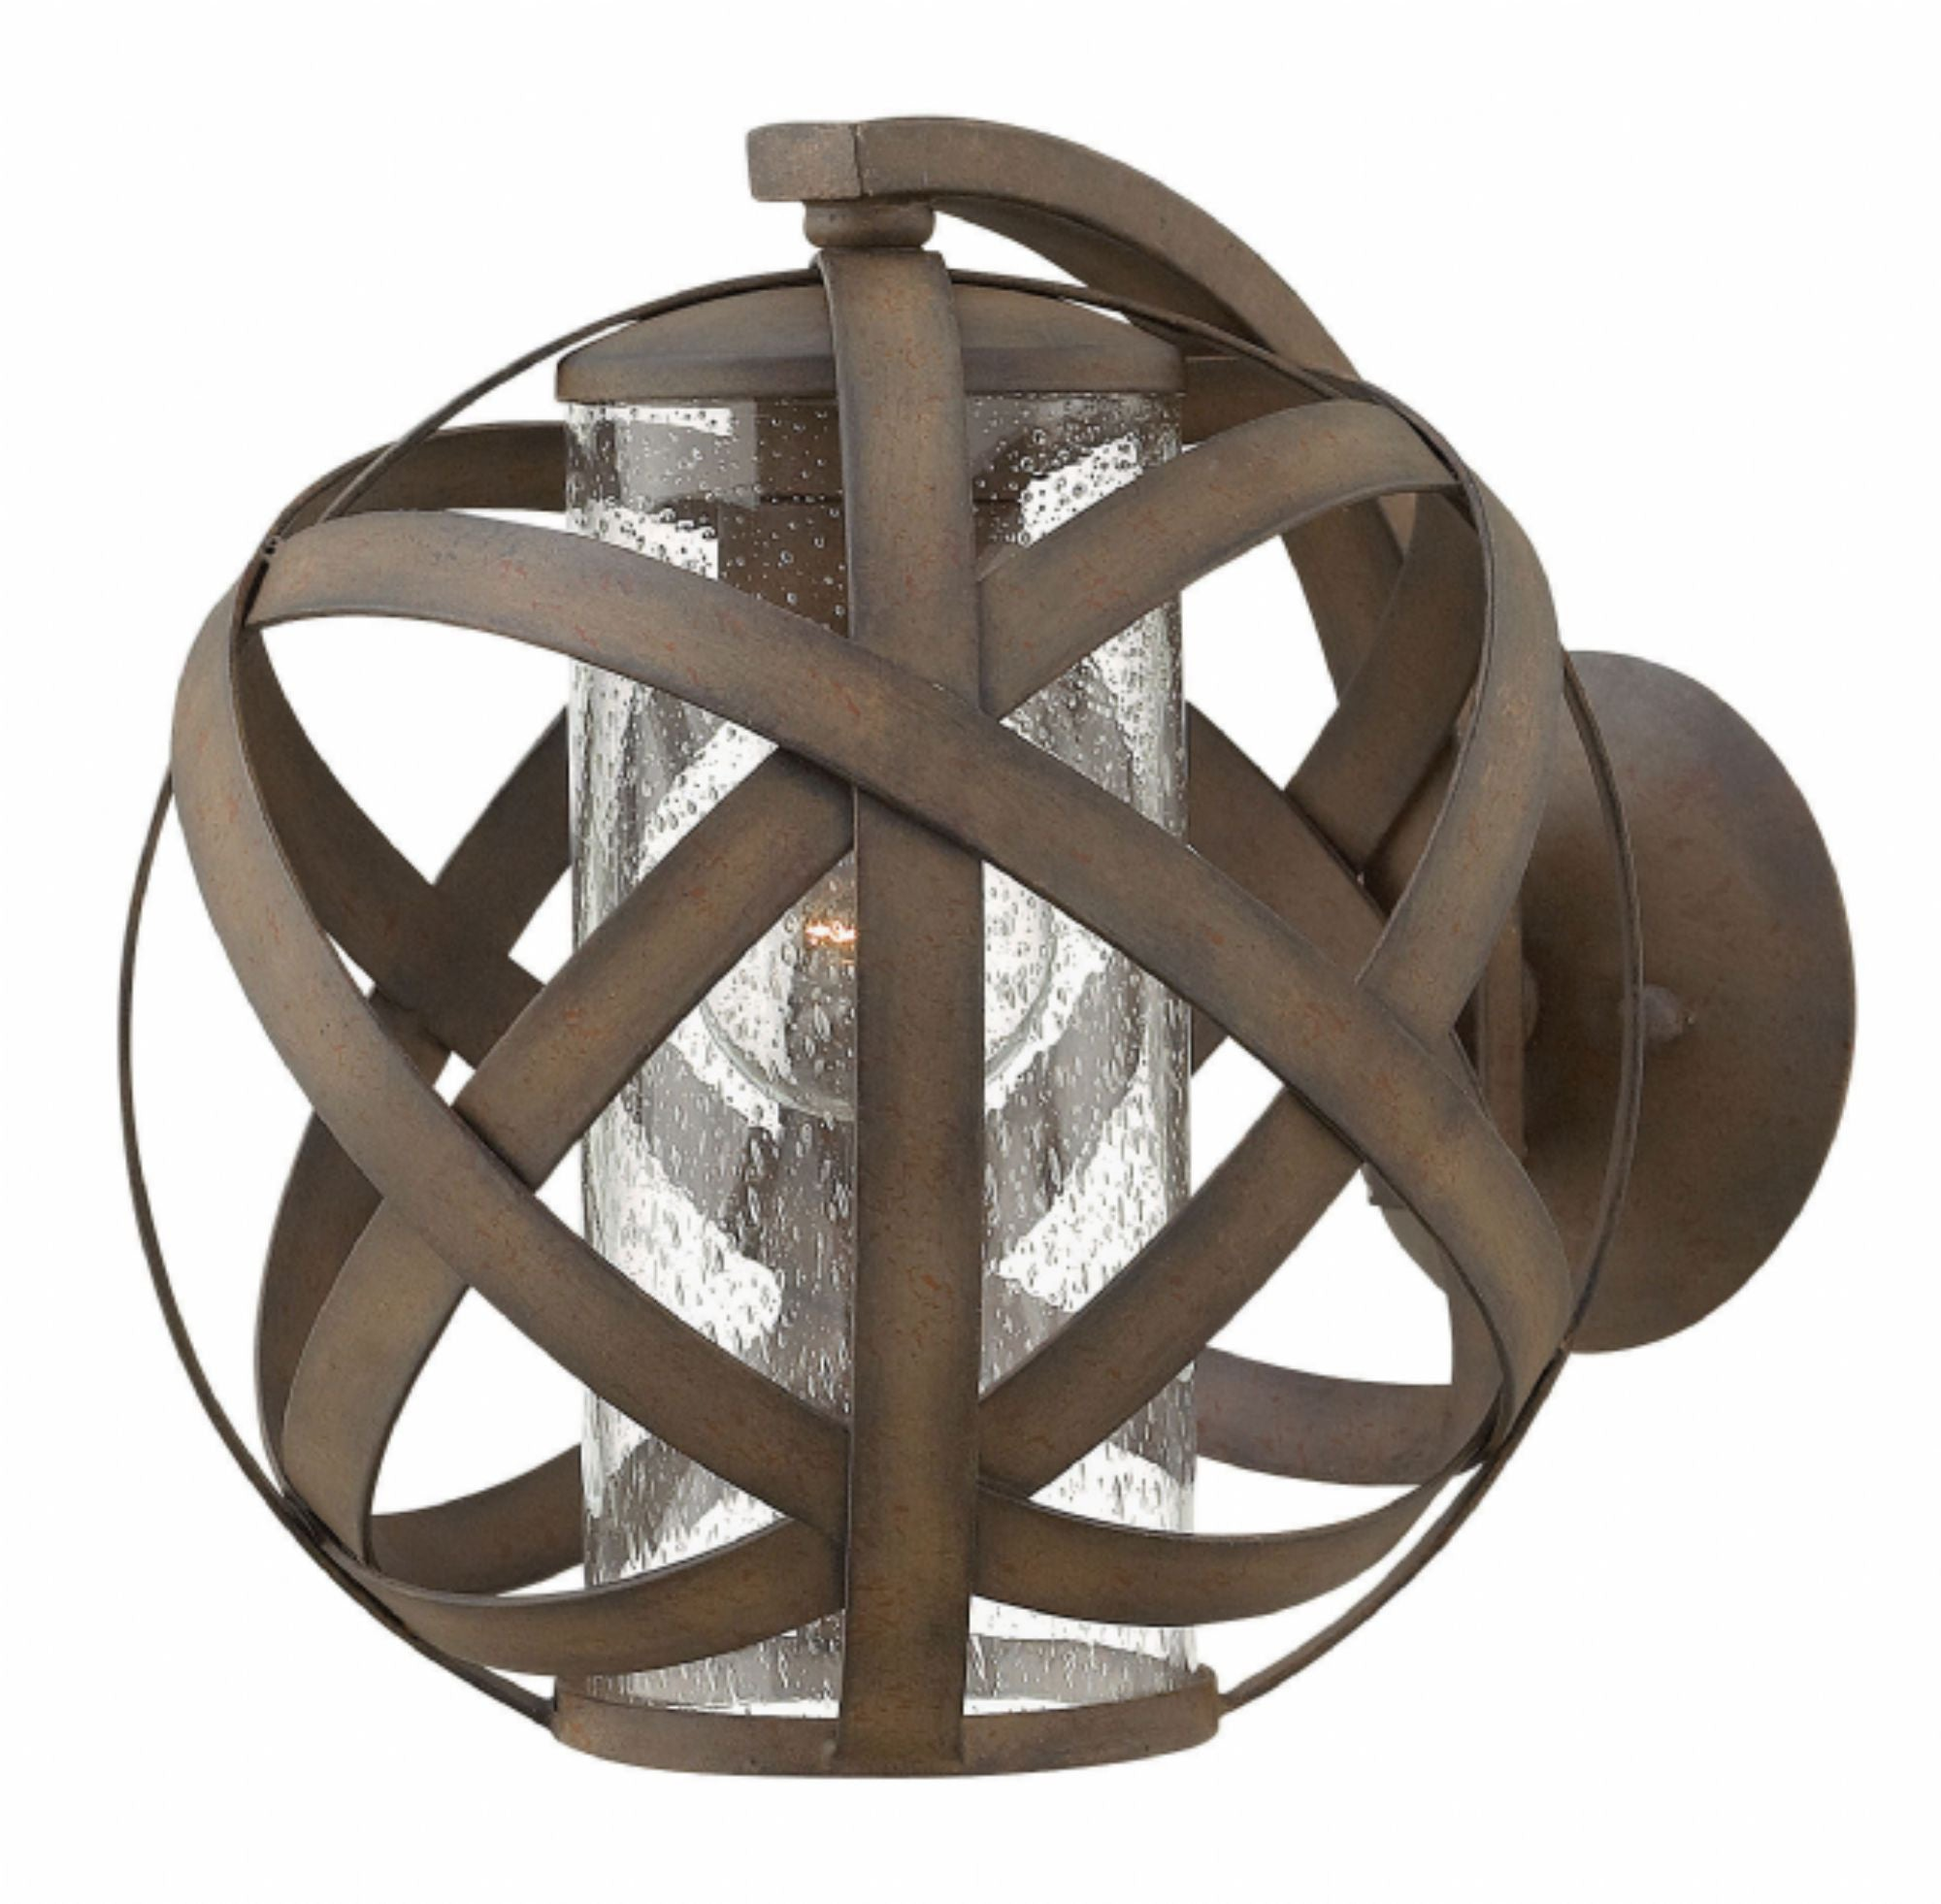 Carson Orb Outdoor Wall Light by Hinkley in Vintage Iron Finish 29700VI